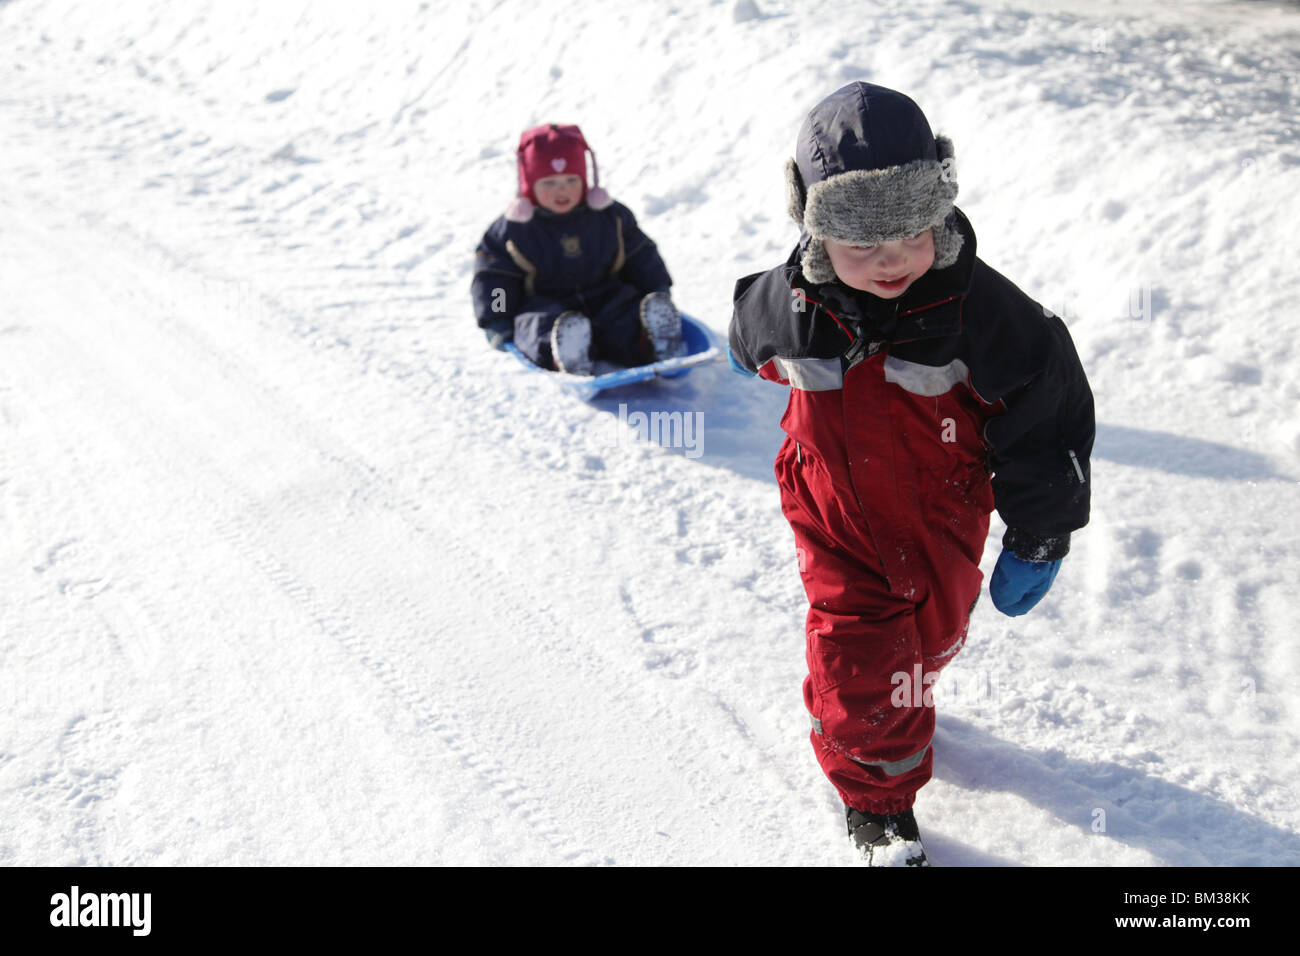 Two siblings babies kids children play together snow sledge boy girl pull pulling model released - Stock Image